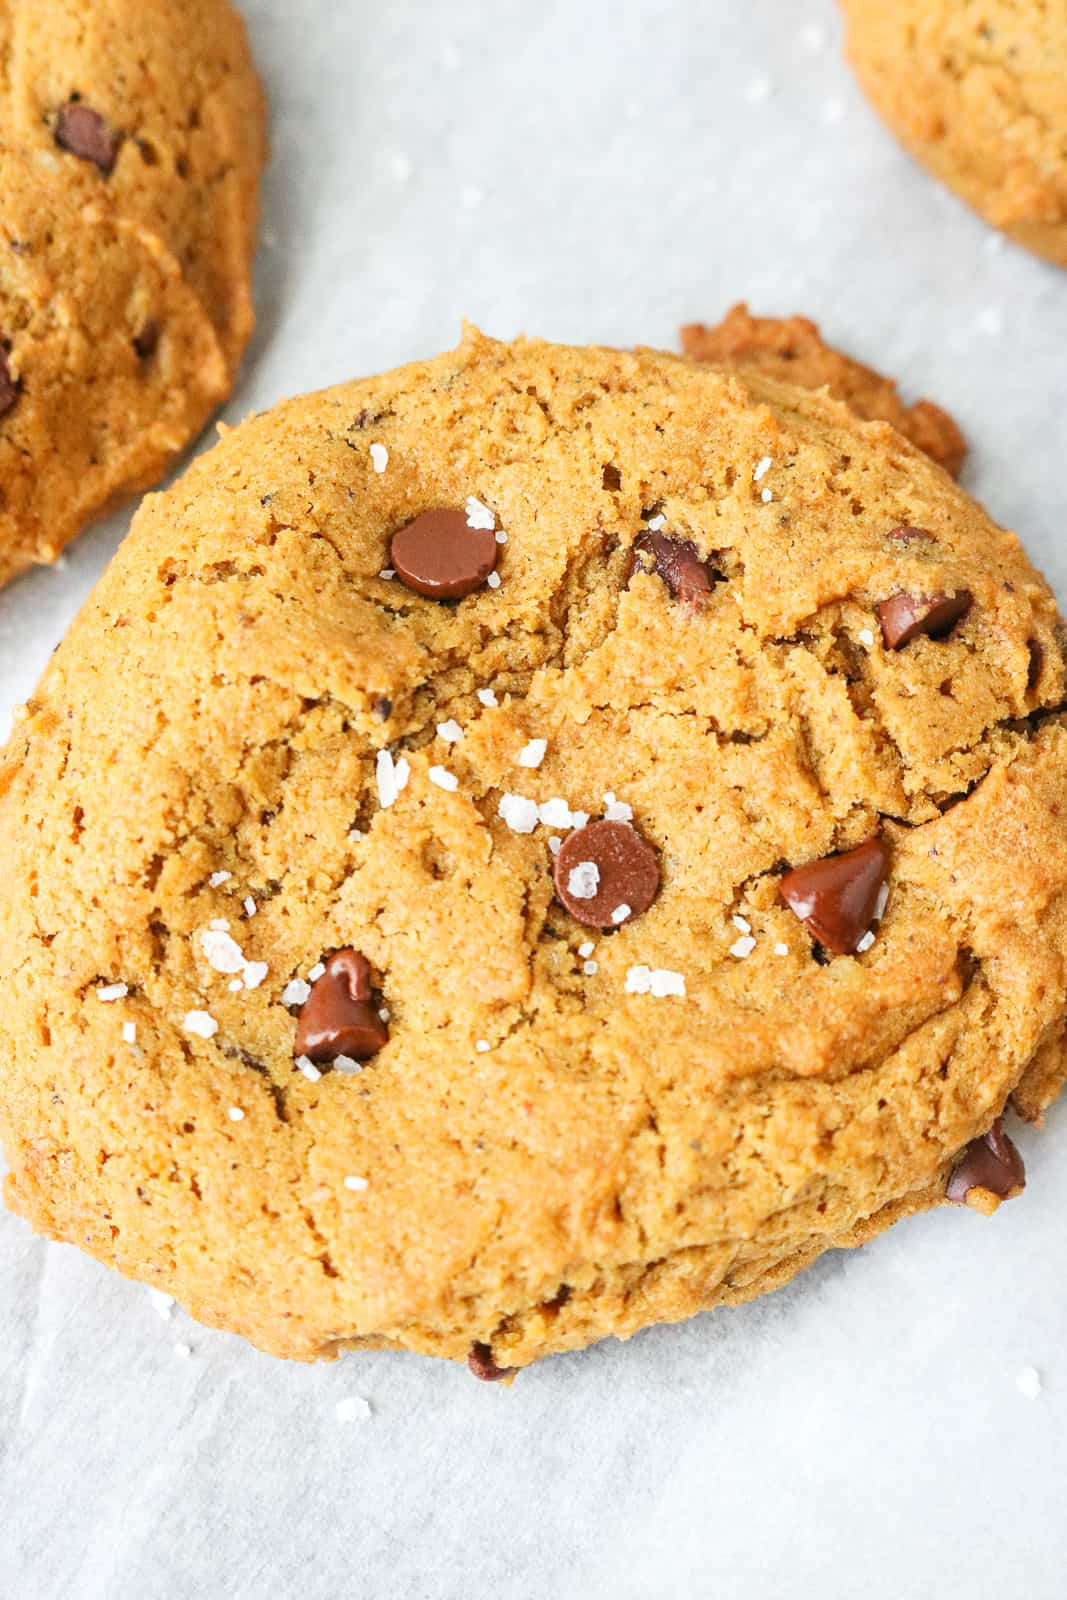 Vegan Pumpkin Chocolate Chip Cookies with salt on top